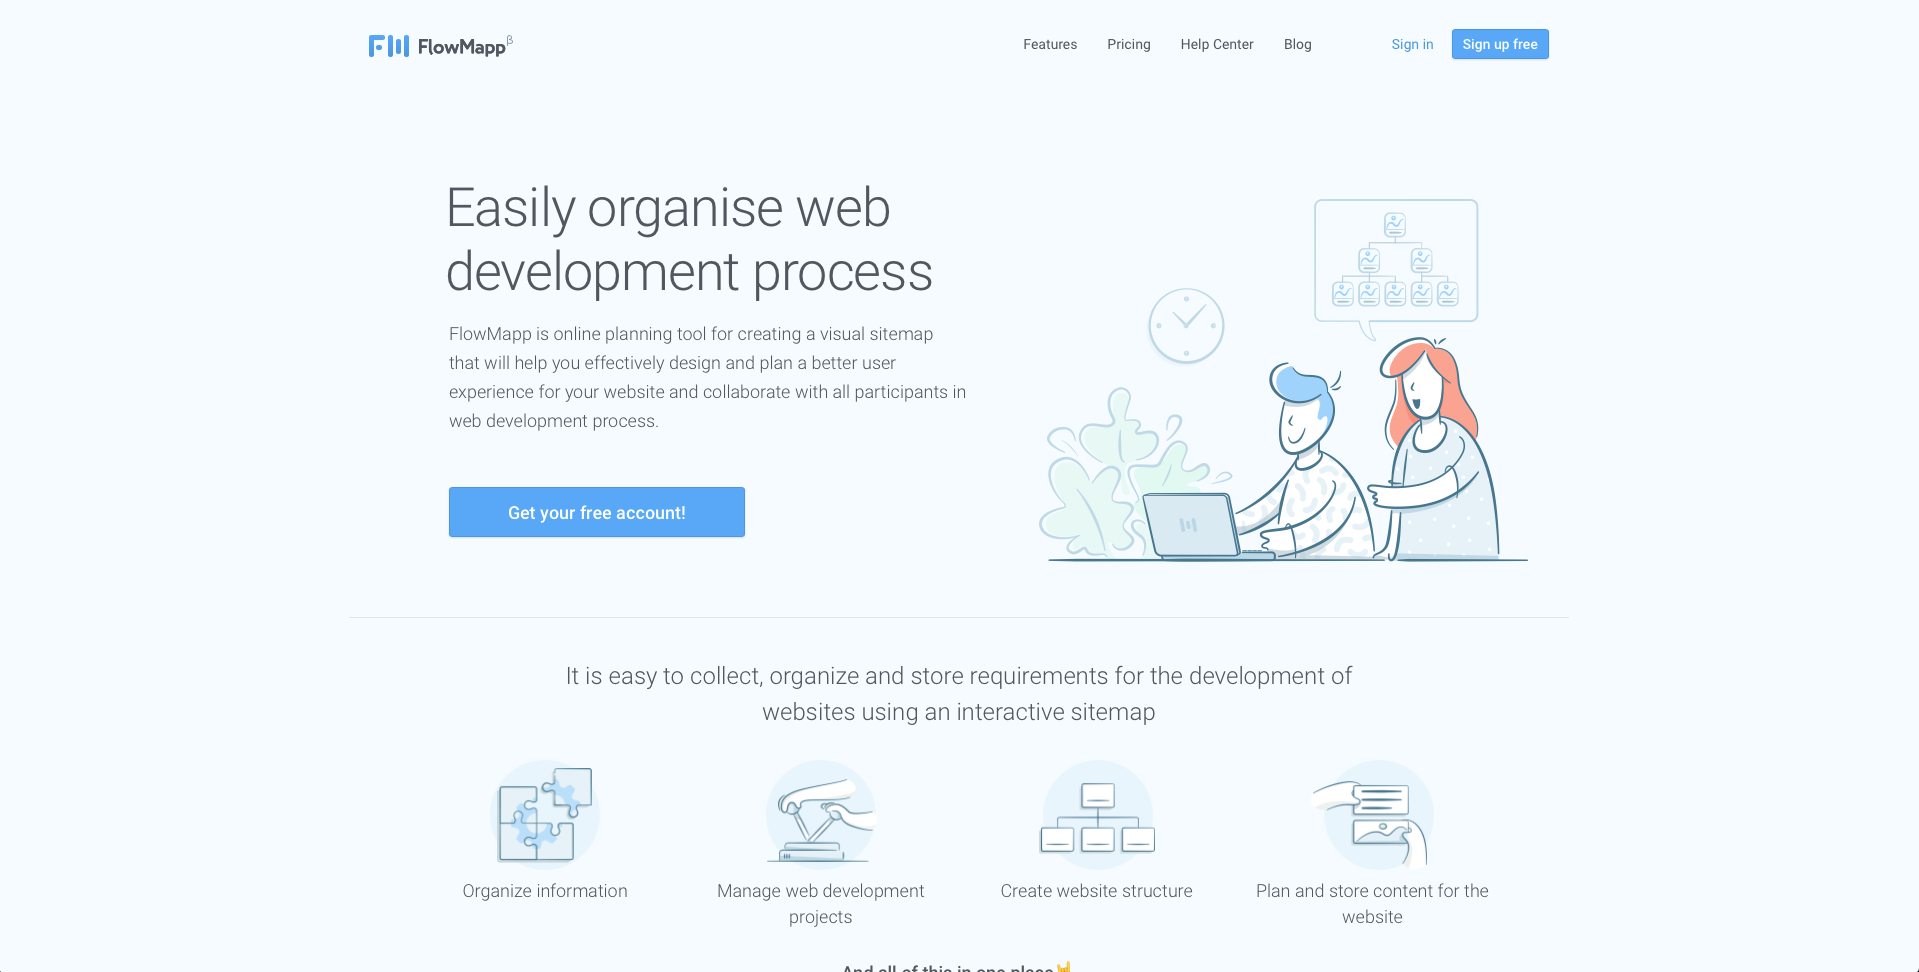 An image of flowmapp.com's illustrated header